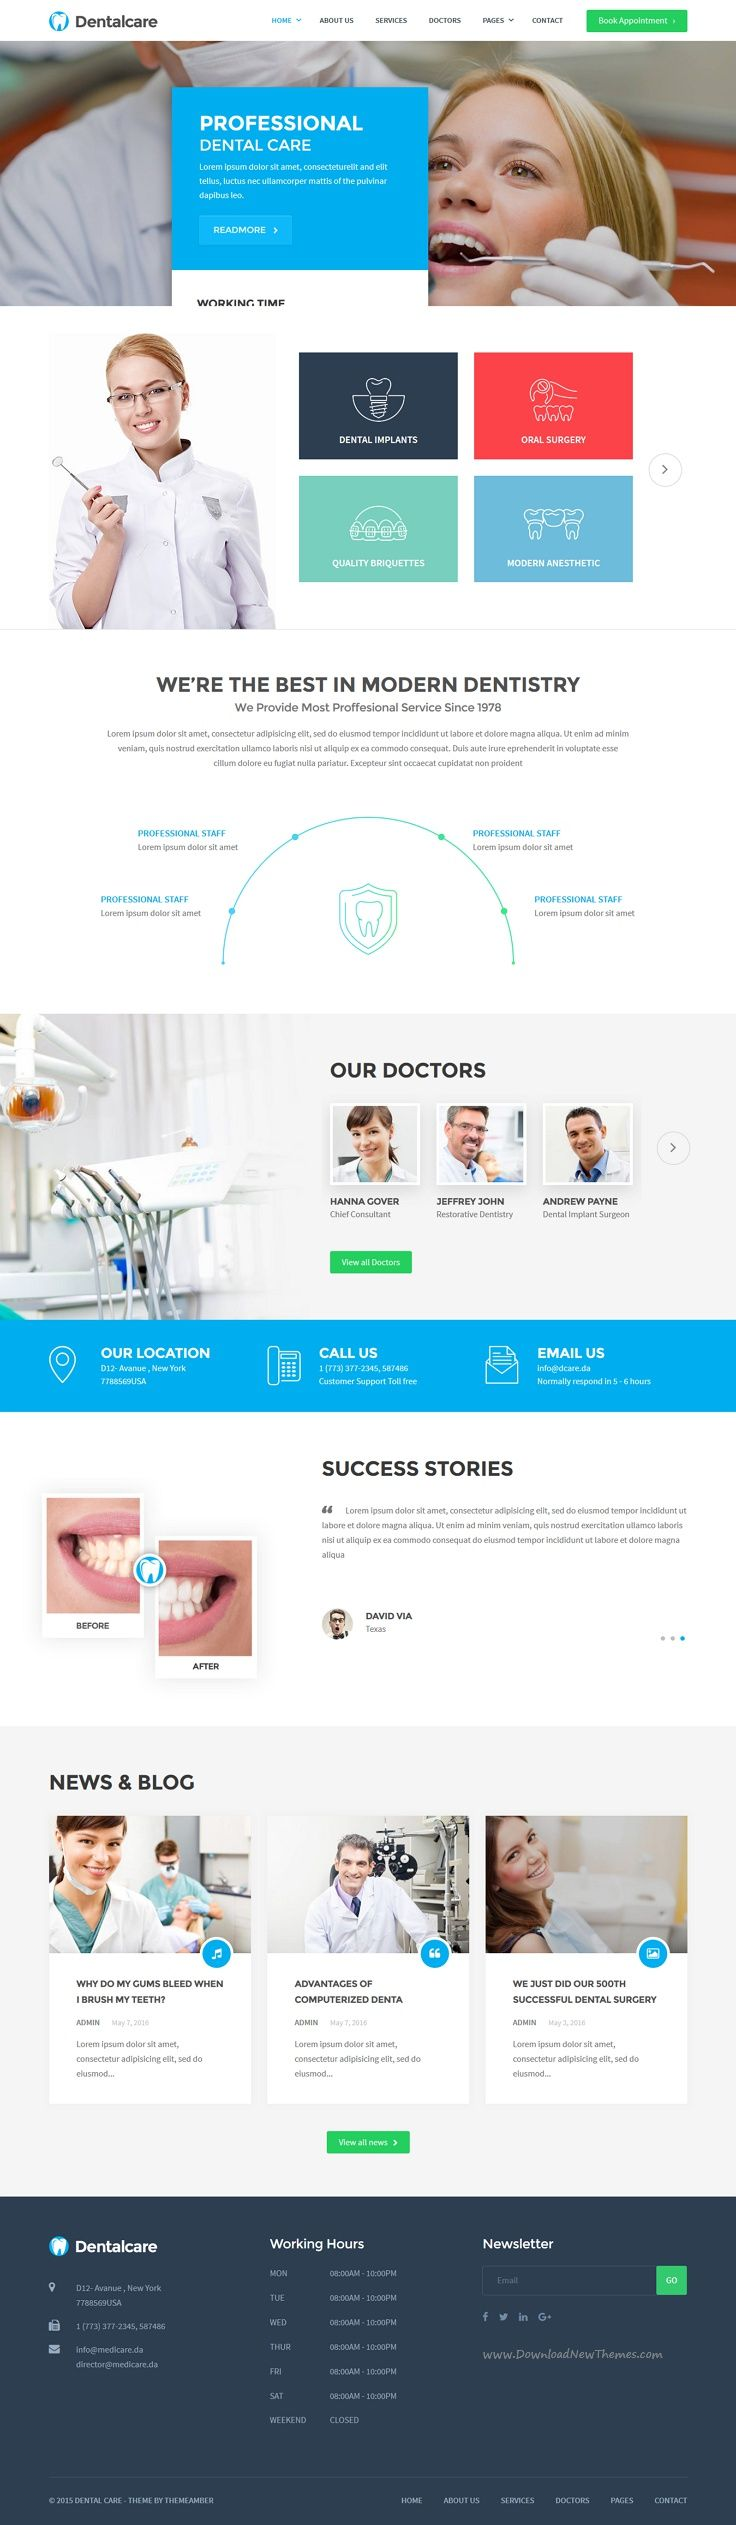 Dental care is perfect premium 2 in 1 #WordPress theme for #dental services, #dentists clinics responsive website download now➯ https://themeforest.net/item/dental-care-medical-dentist-health-wordpress-theme/16153351?ref=Datasata